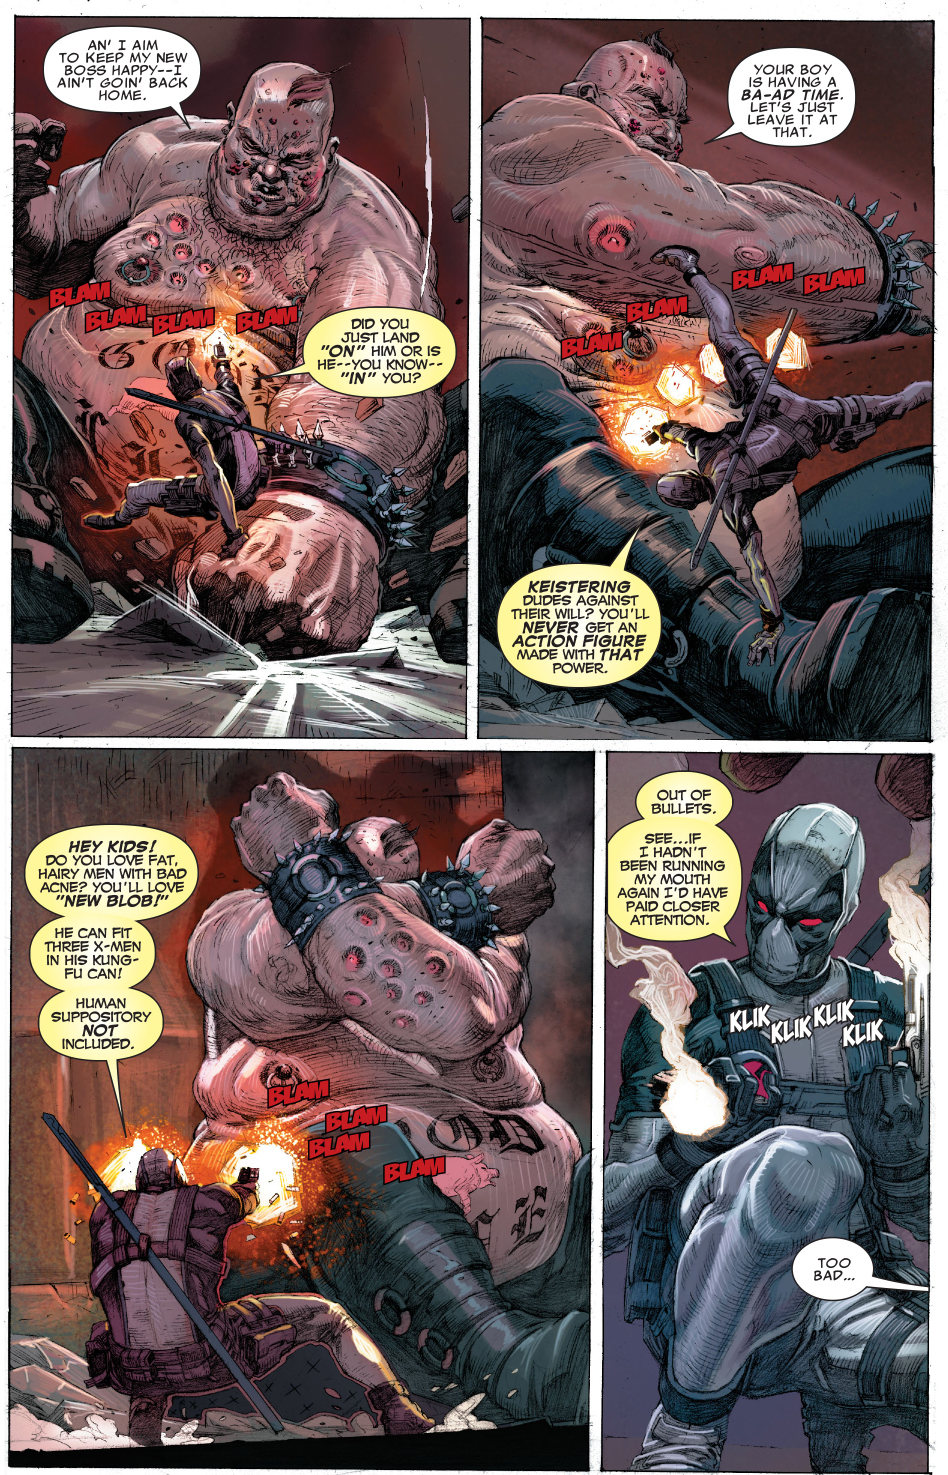 Deadpool And Fantomex VS Age Of Apocalypse Blob | Comicnewbies